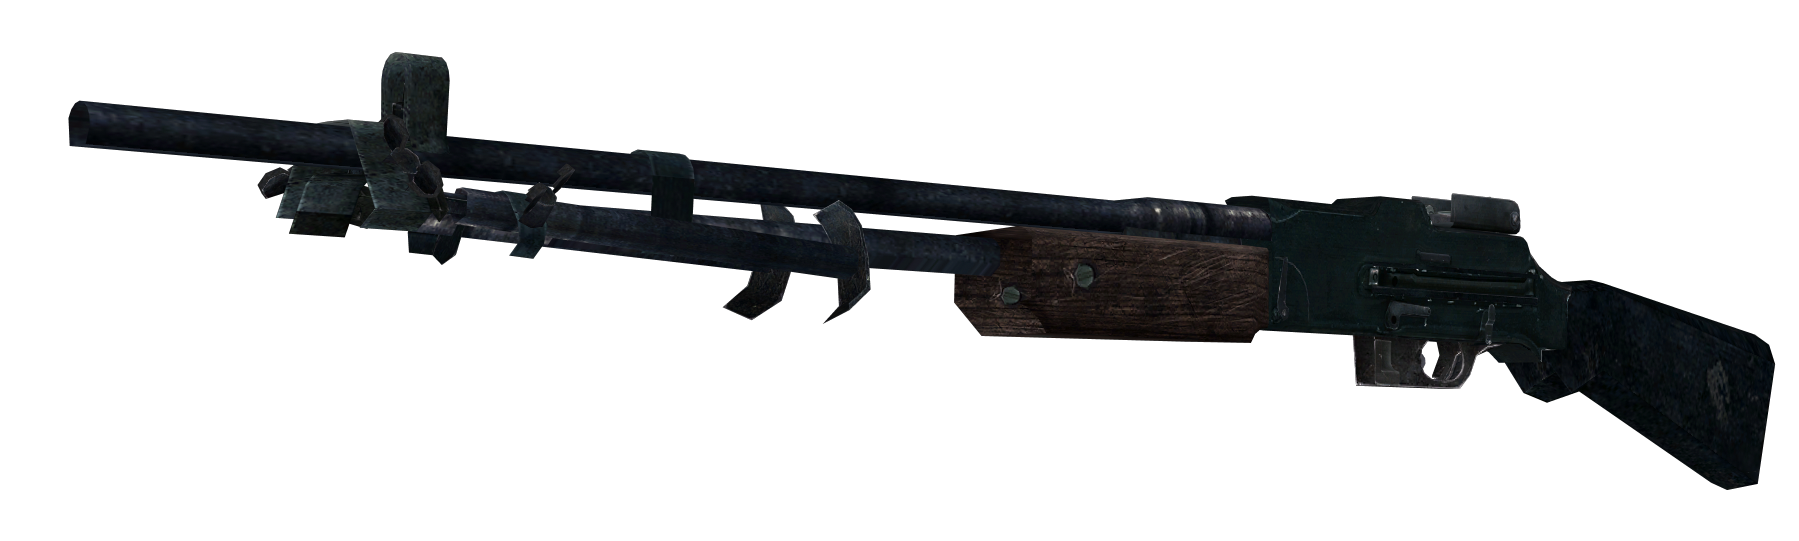 Browning automatic rifle png. Image bar model cod